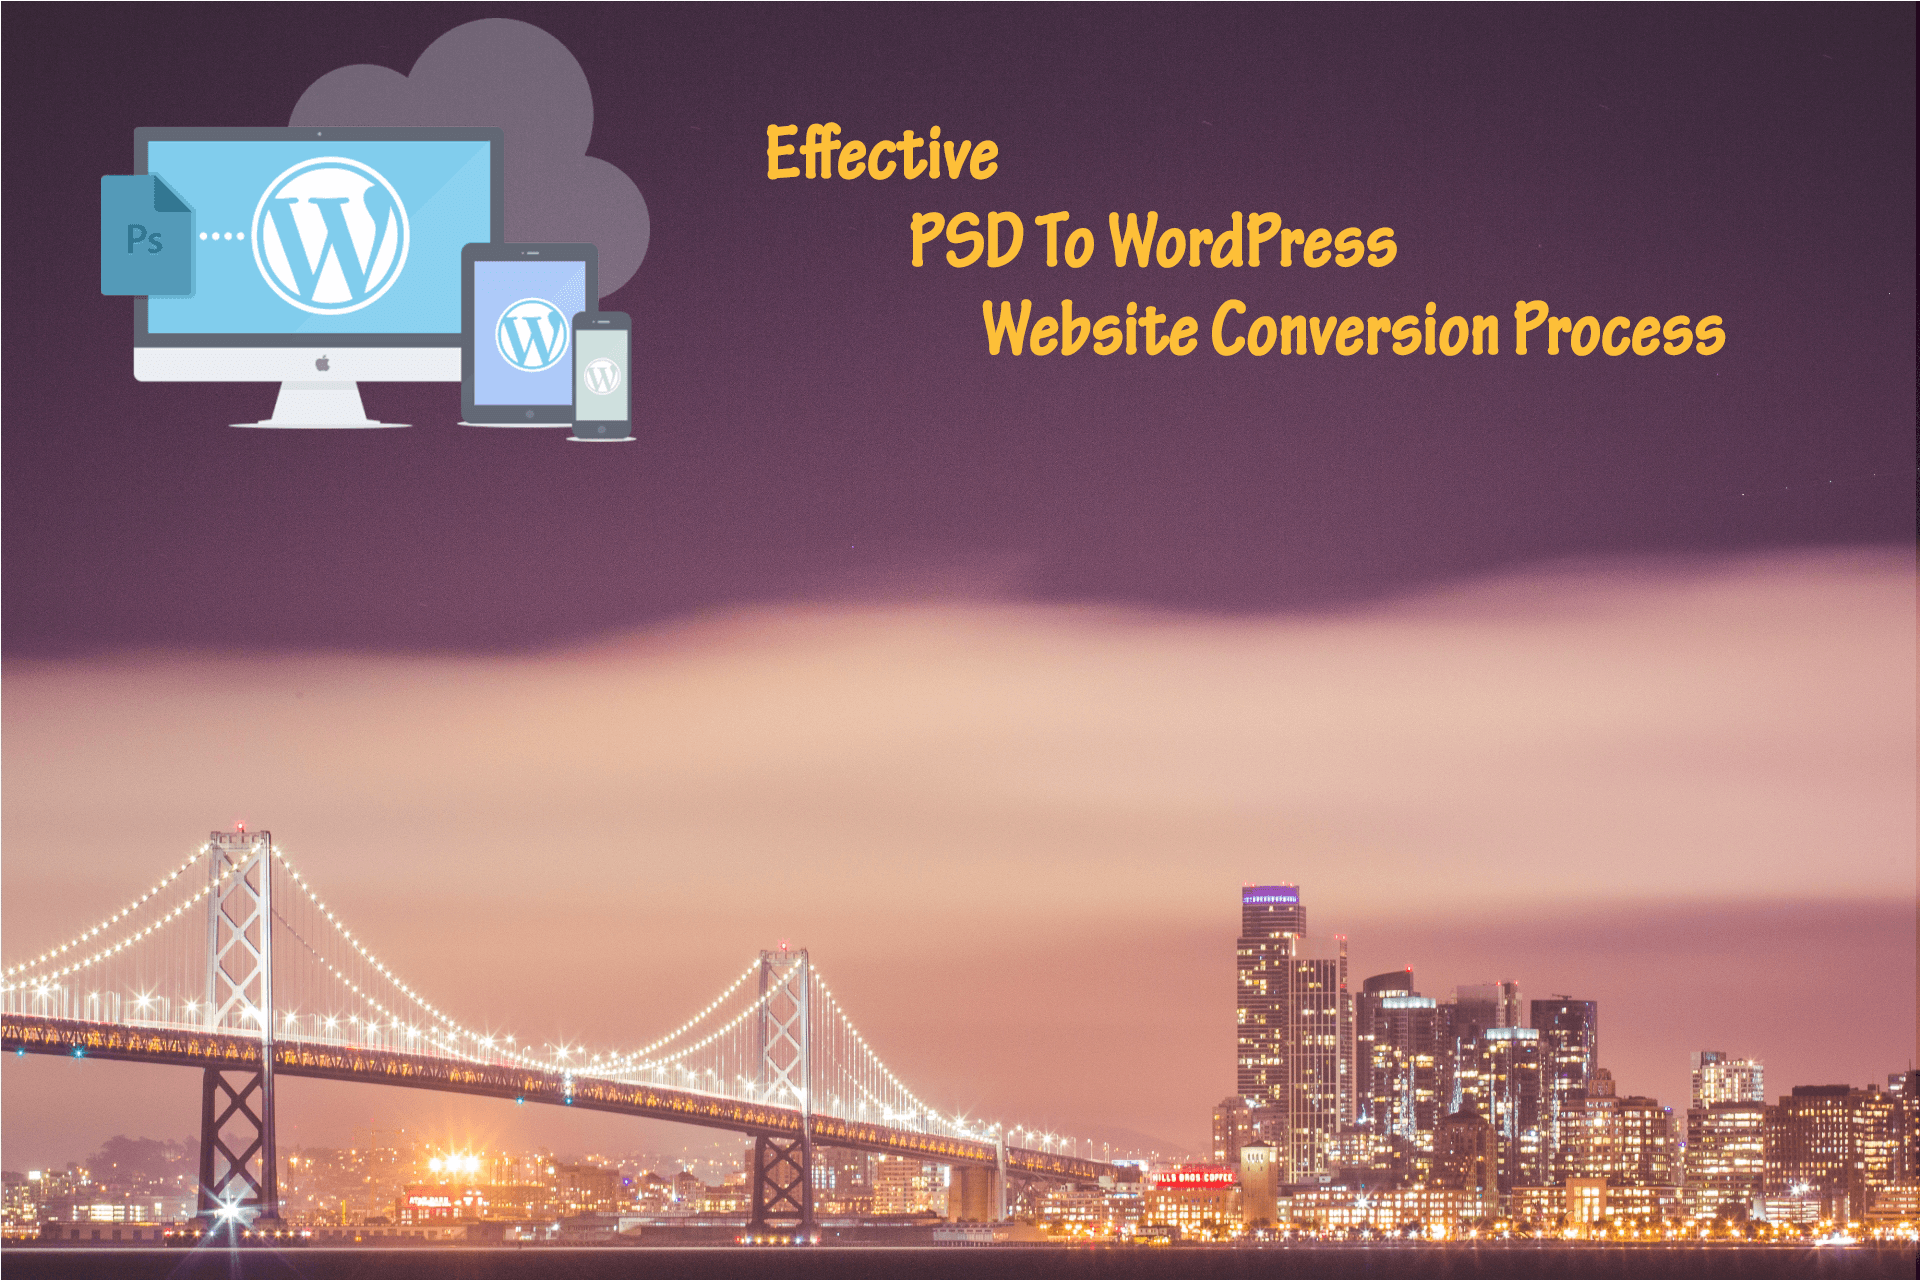 PSD-to-WordPress-Website-Conversion-Process